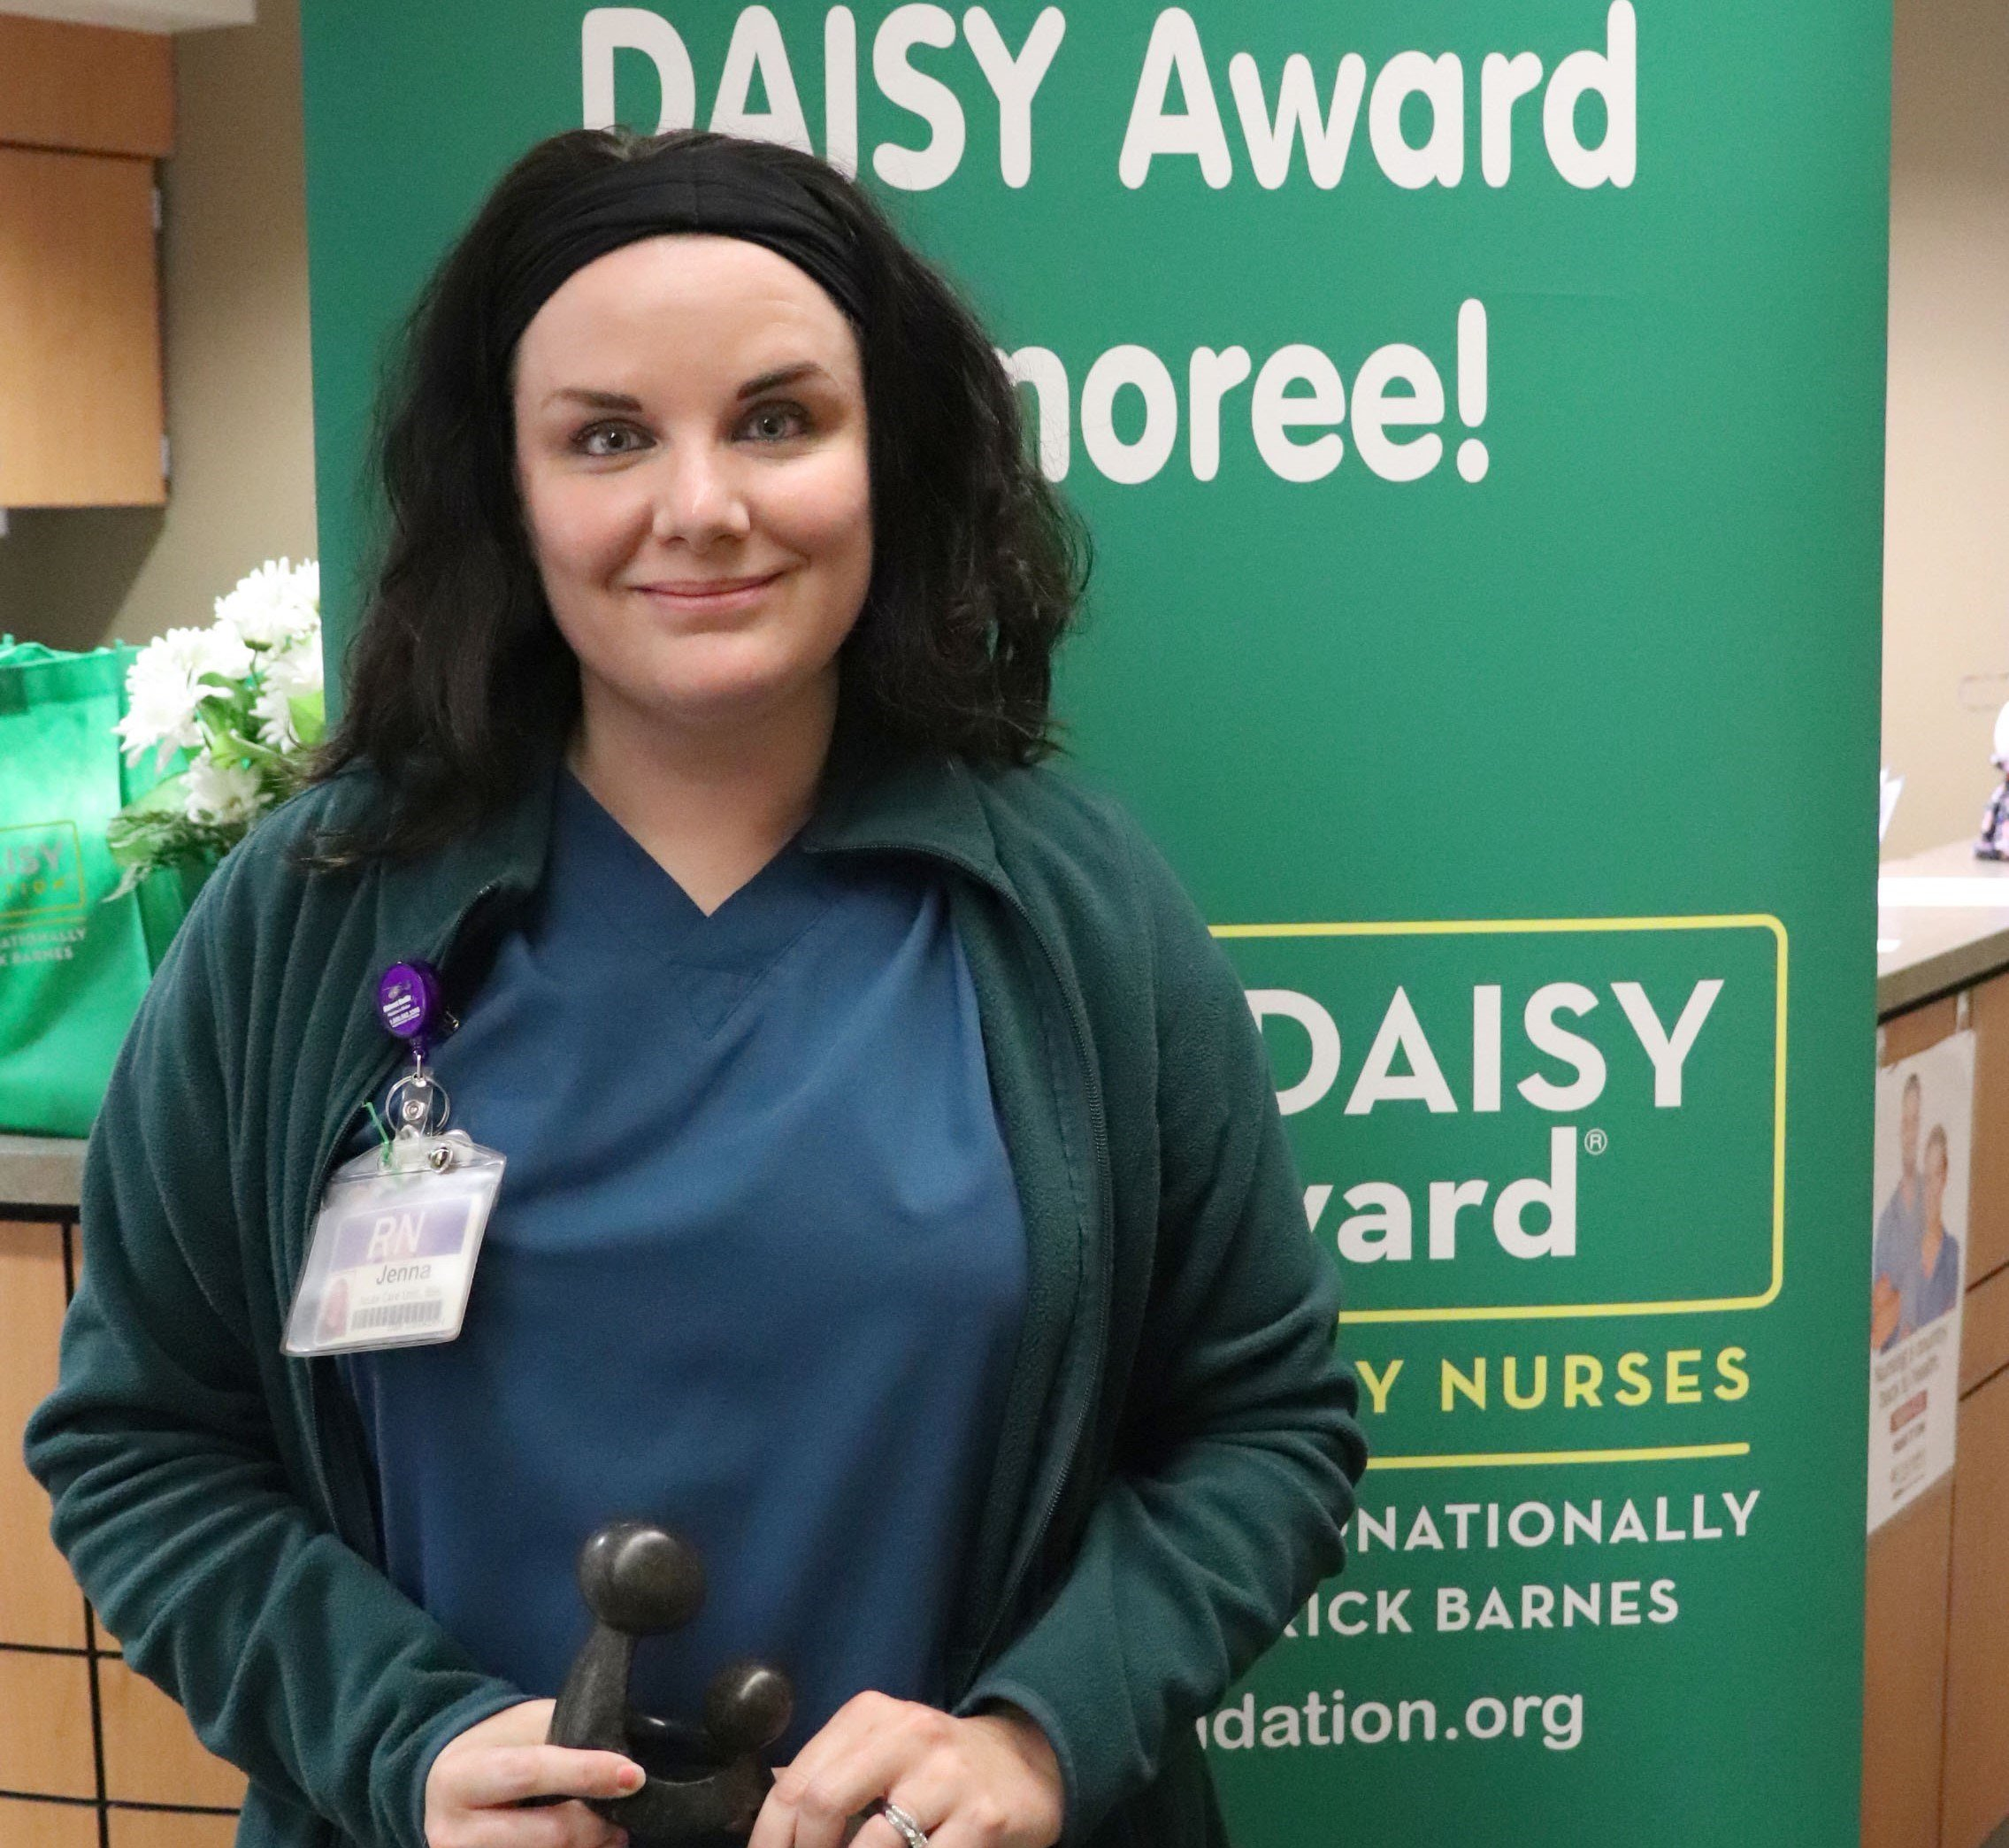 'Patient and kind': Meister recognized for nursing skills